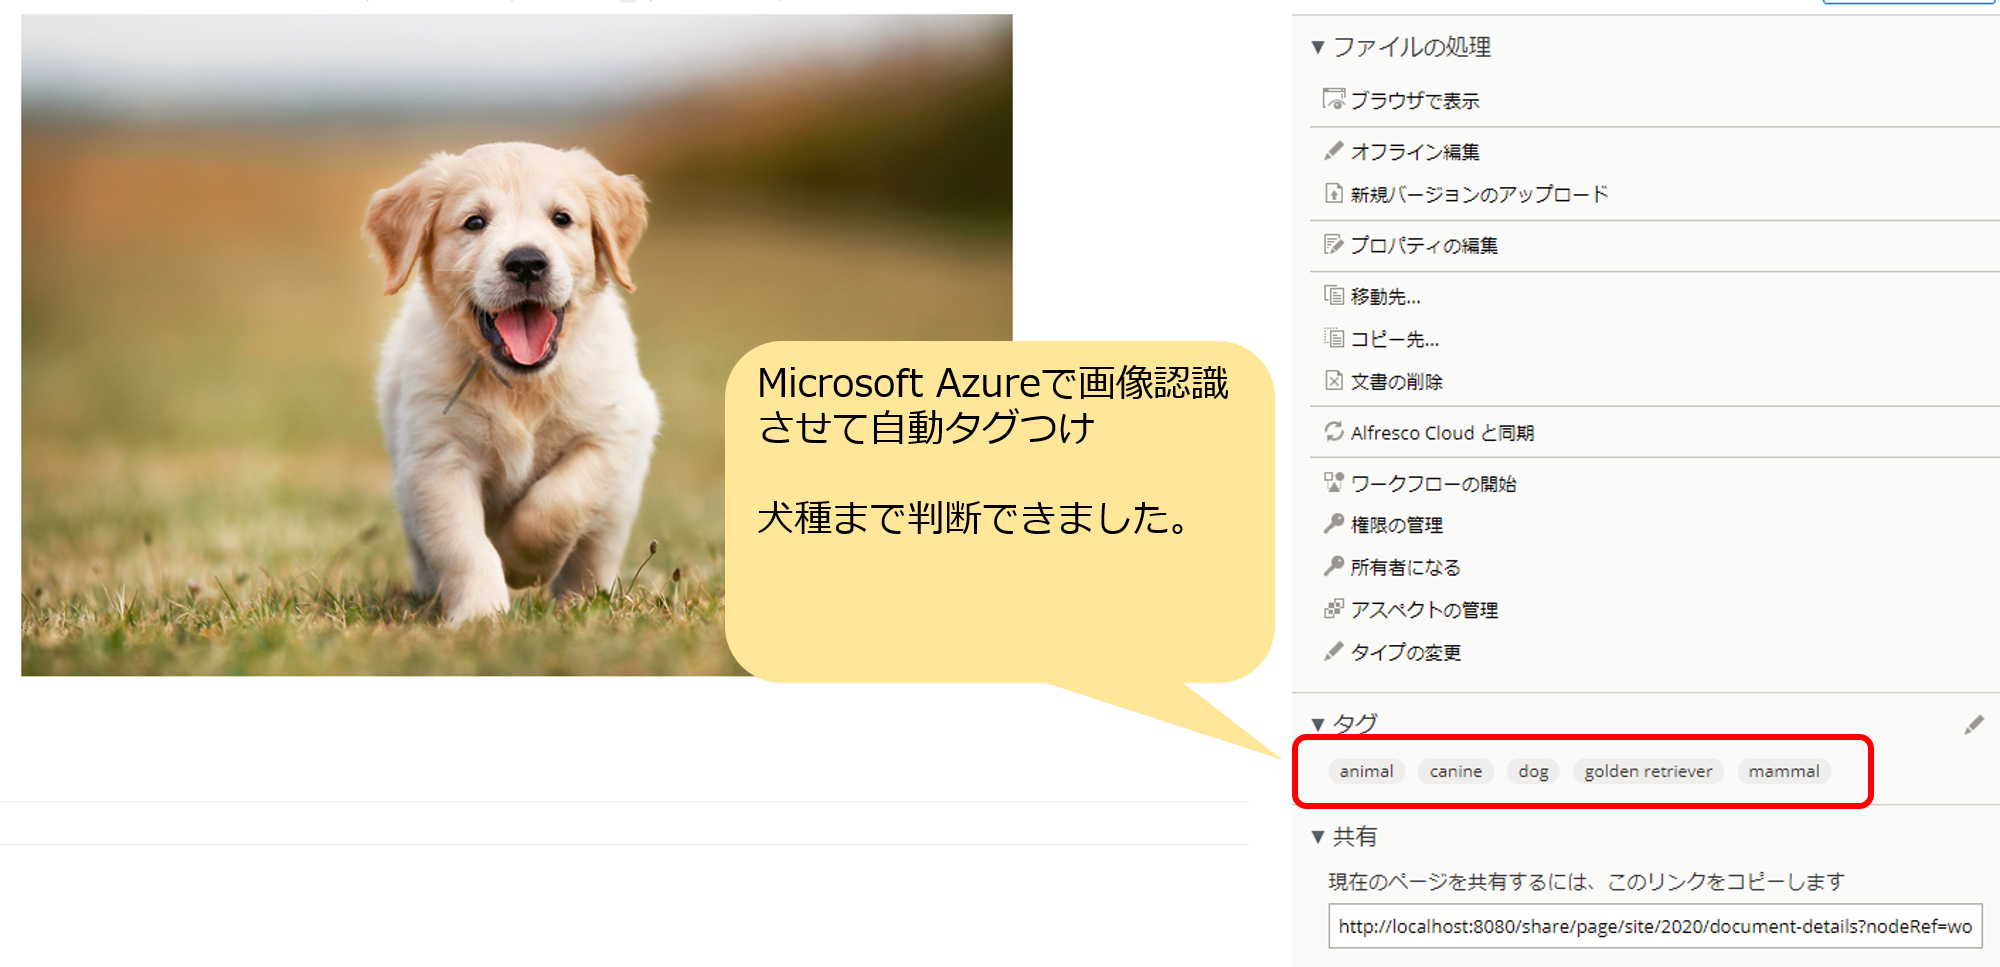 Microsoft Azureで画像認識させて自動タグ付け